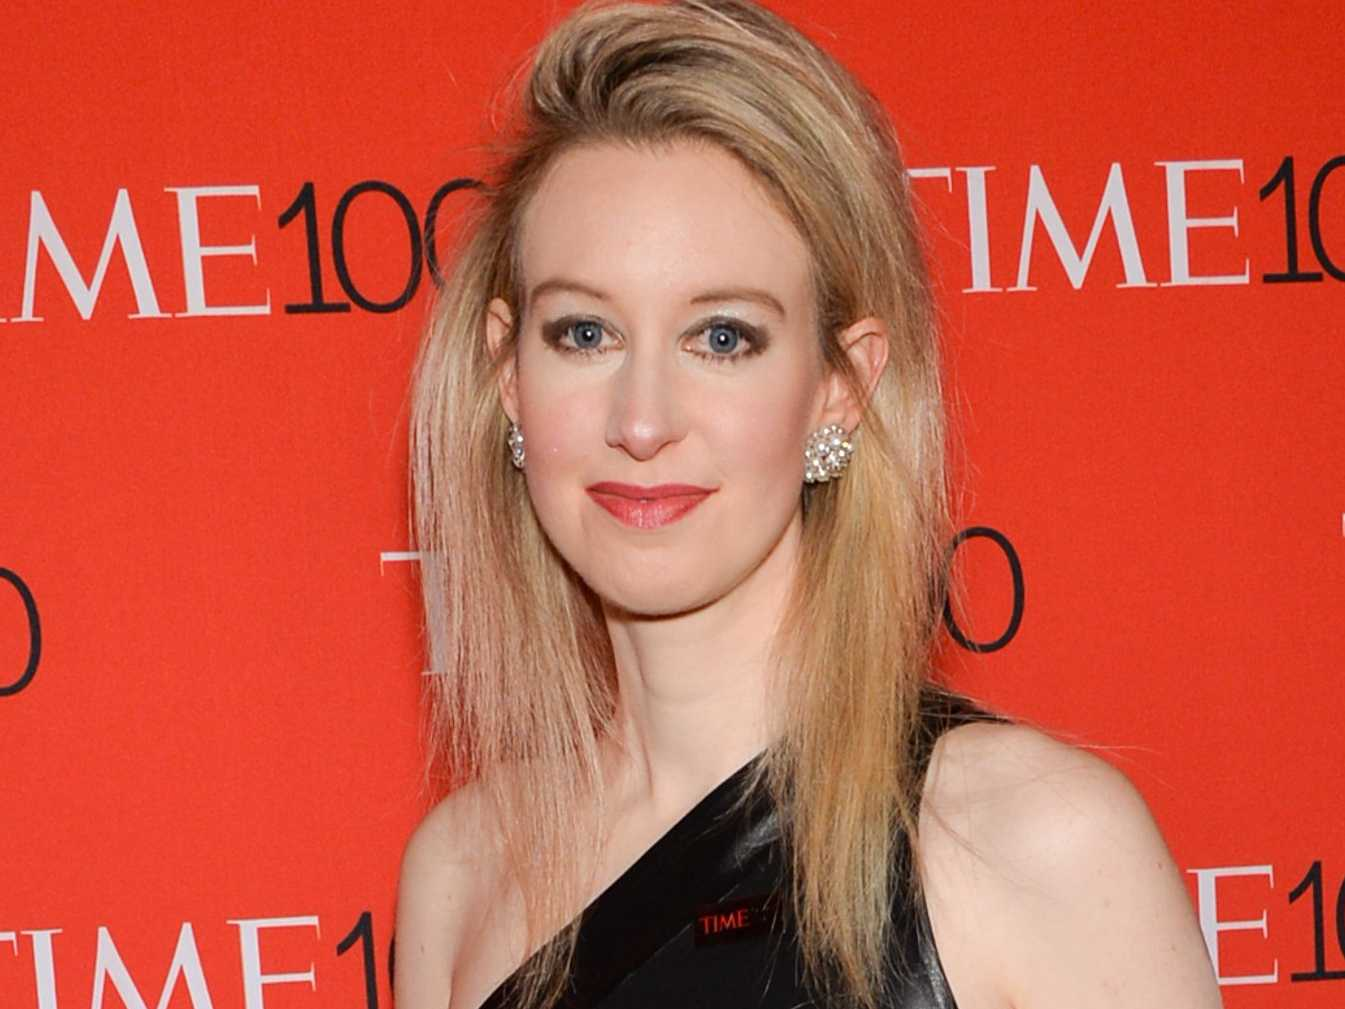 UNILAD elizabeth holmes 390919 This Woman Dropped Out Of University At 19, Is Now Worth £5.9 Billion